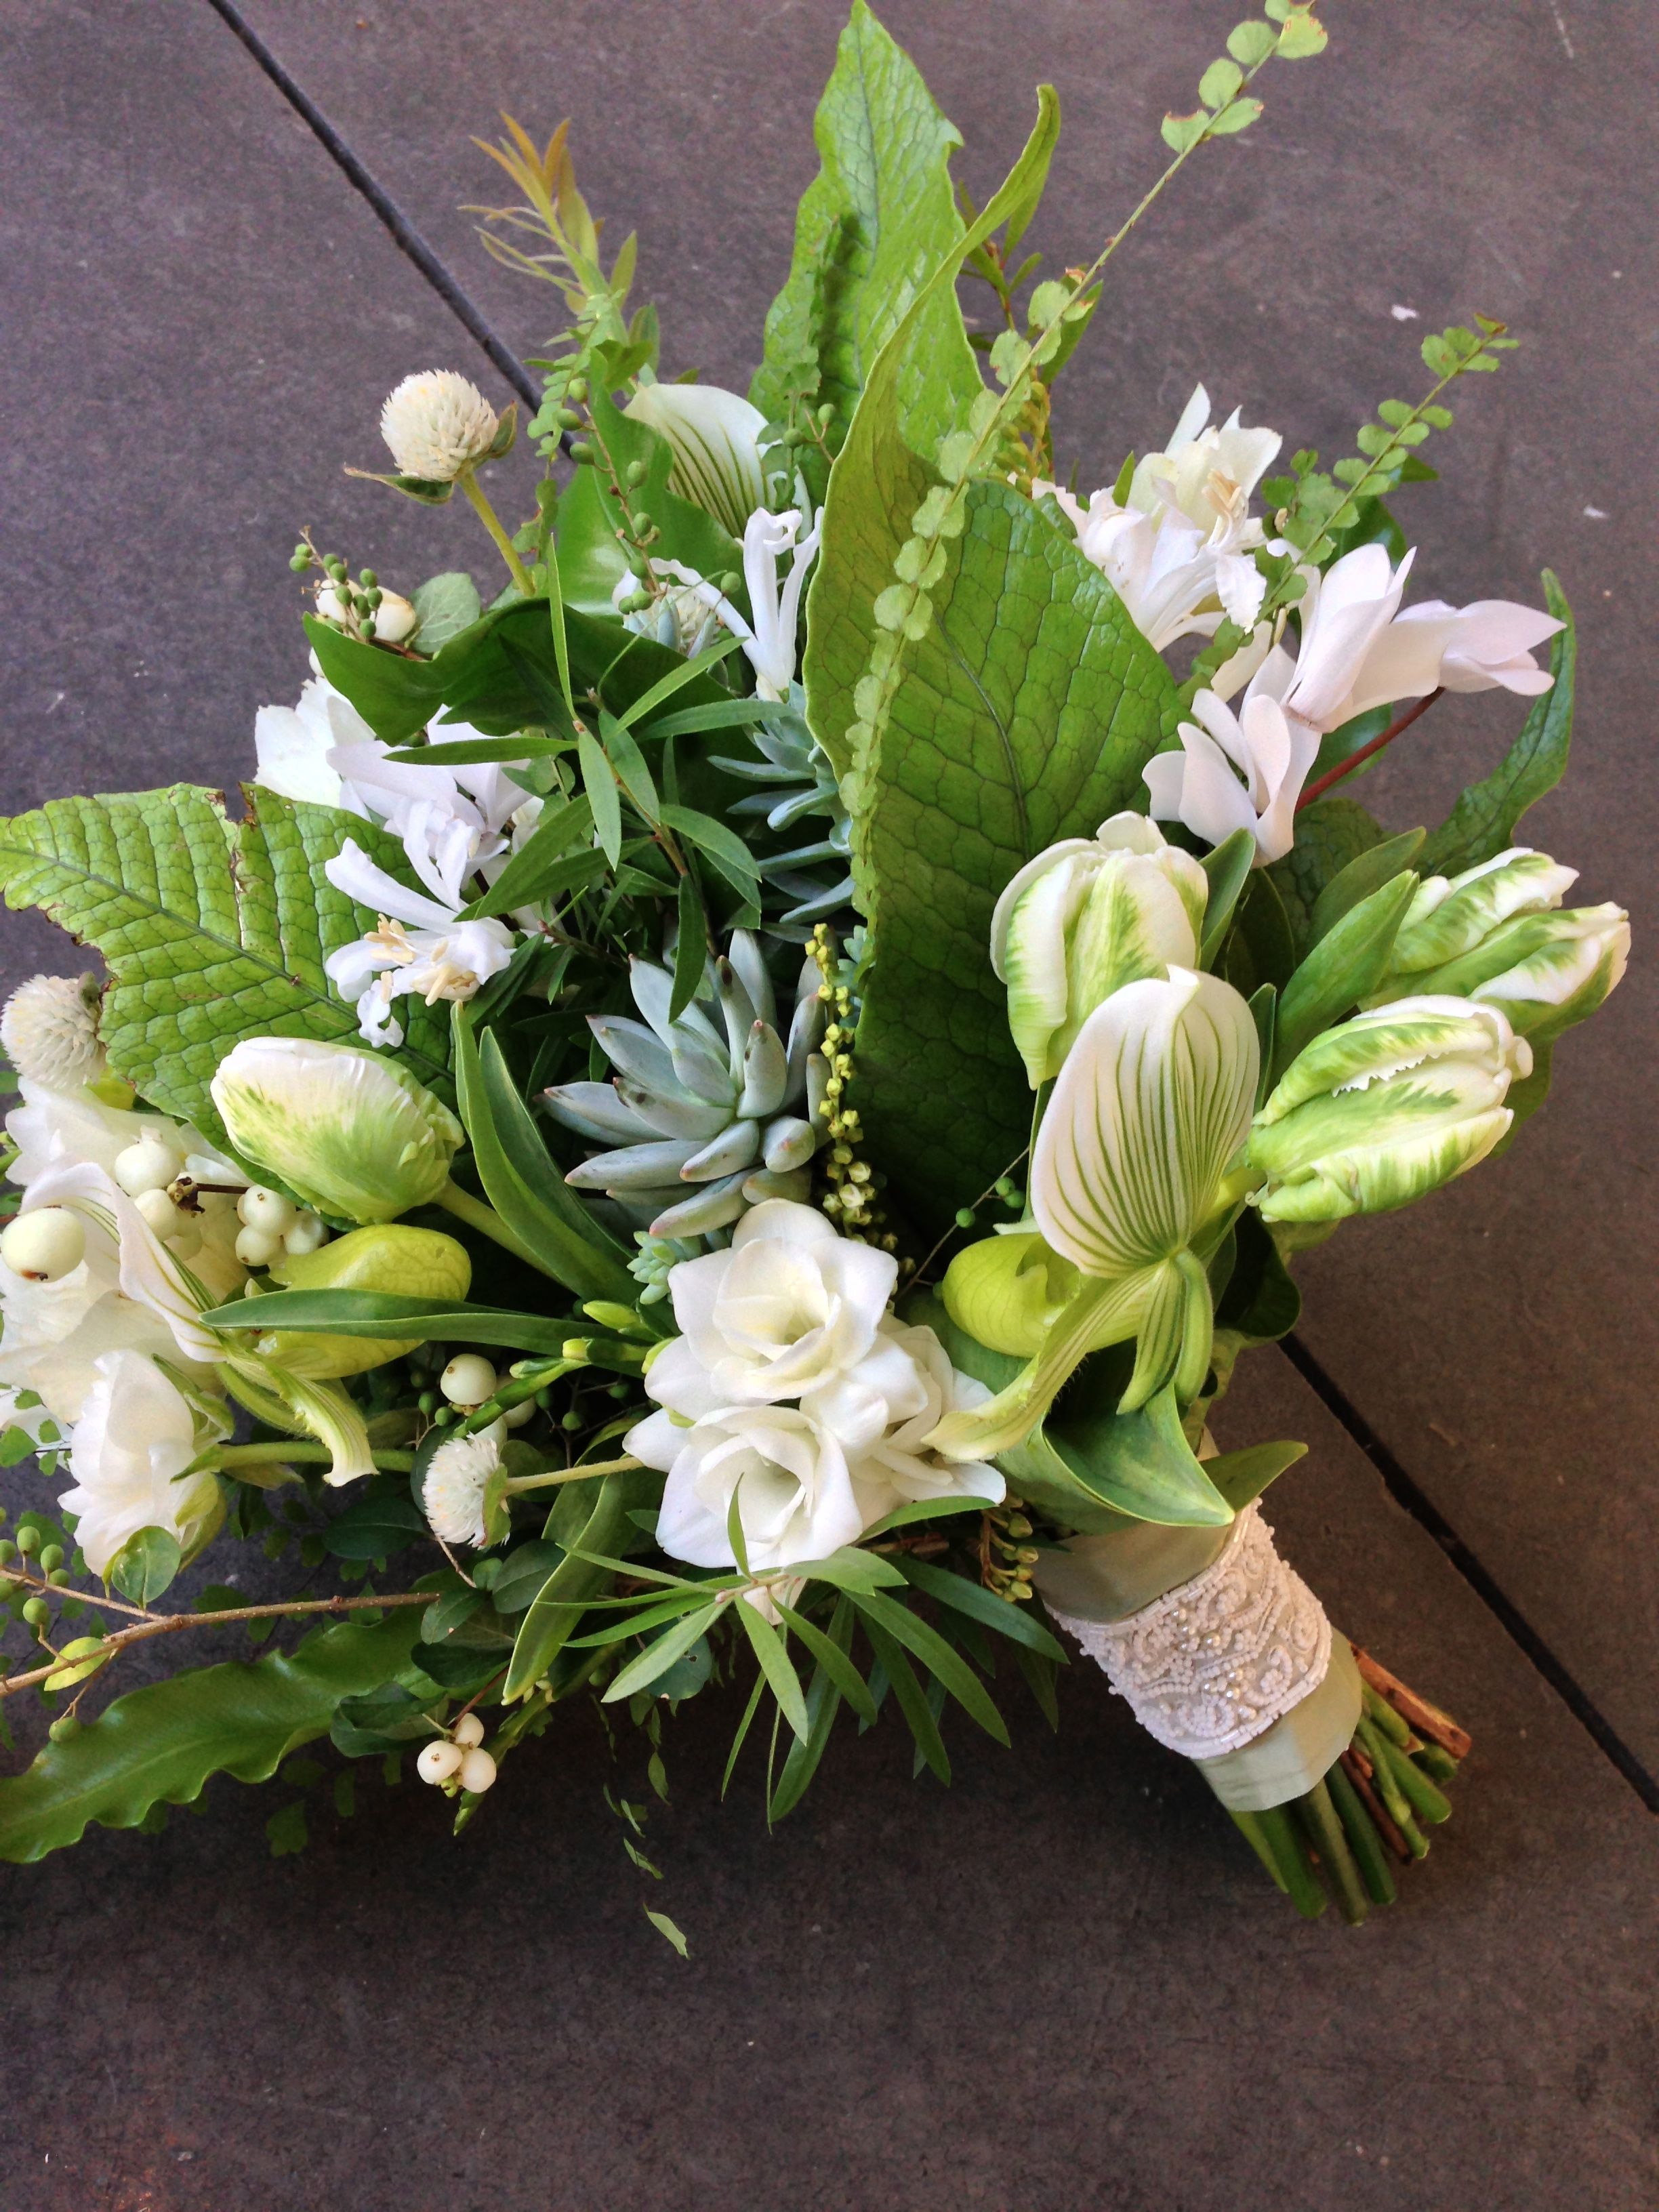 Green and white bouquet parrot tulips freesia succulents green and white bouquet parrot tulips freesia succulents cyclamen lady slipper izmirmasajfo Gallery